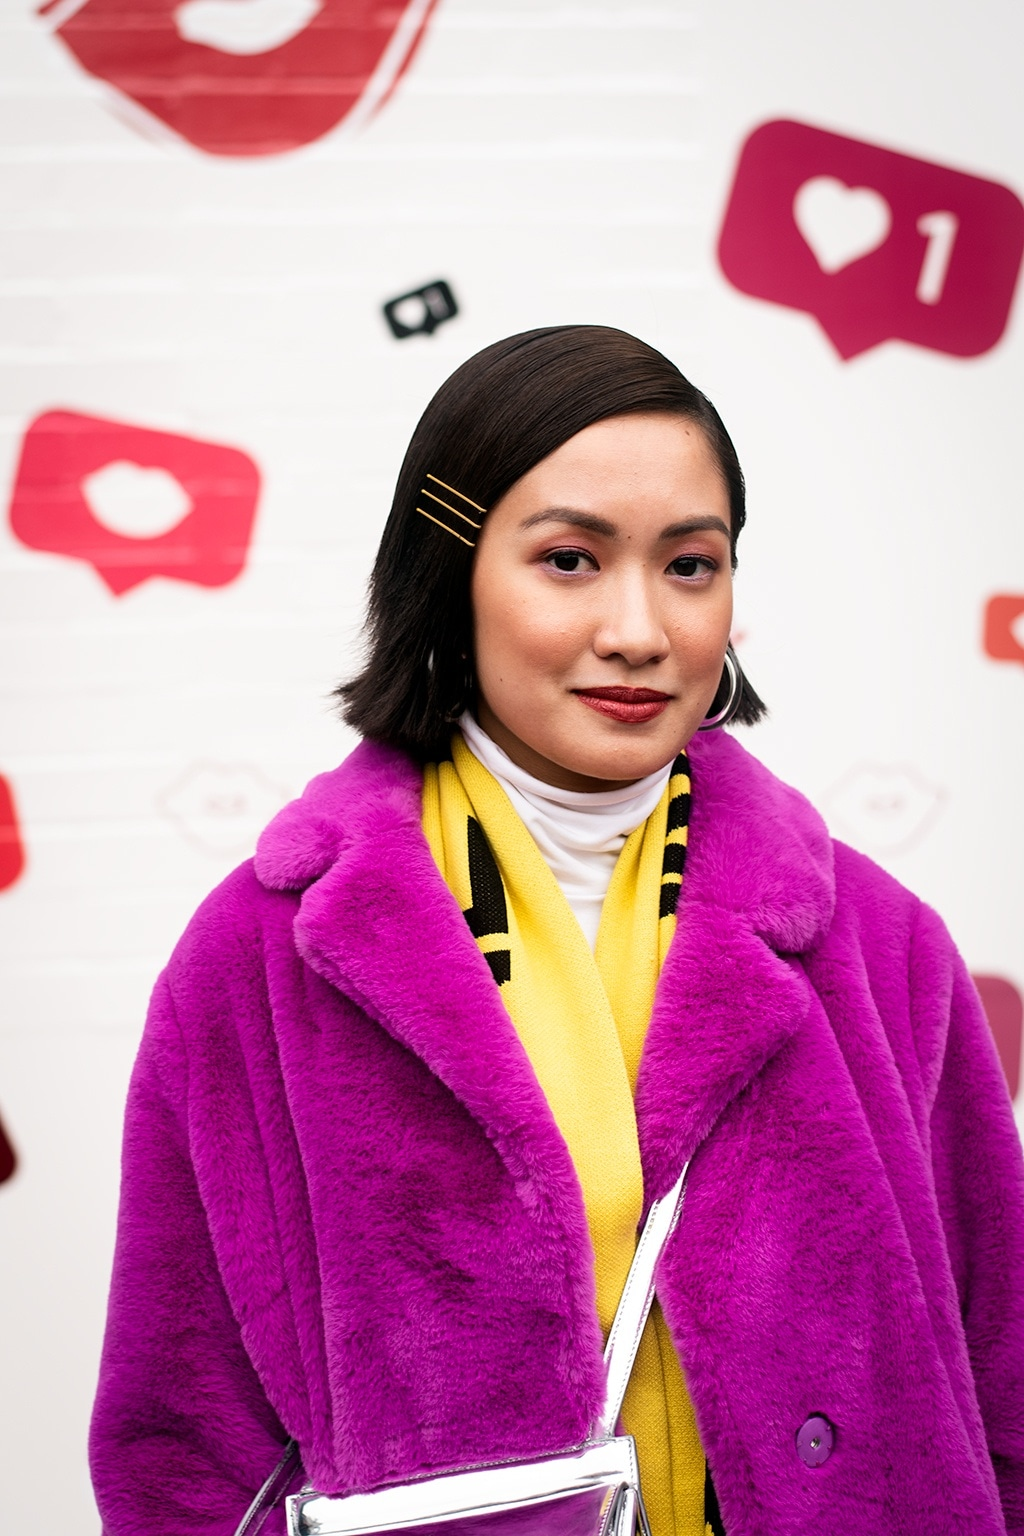 NYFW AW19 Street Style: Shot of woman with dark brown sleek bob haircut with bobby pins, wearing neon pink jumper with neon yellow top